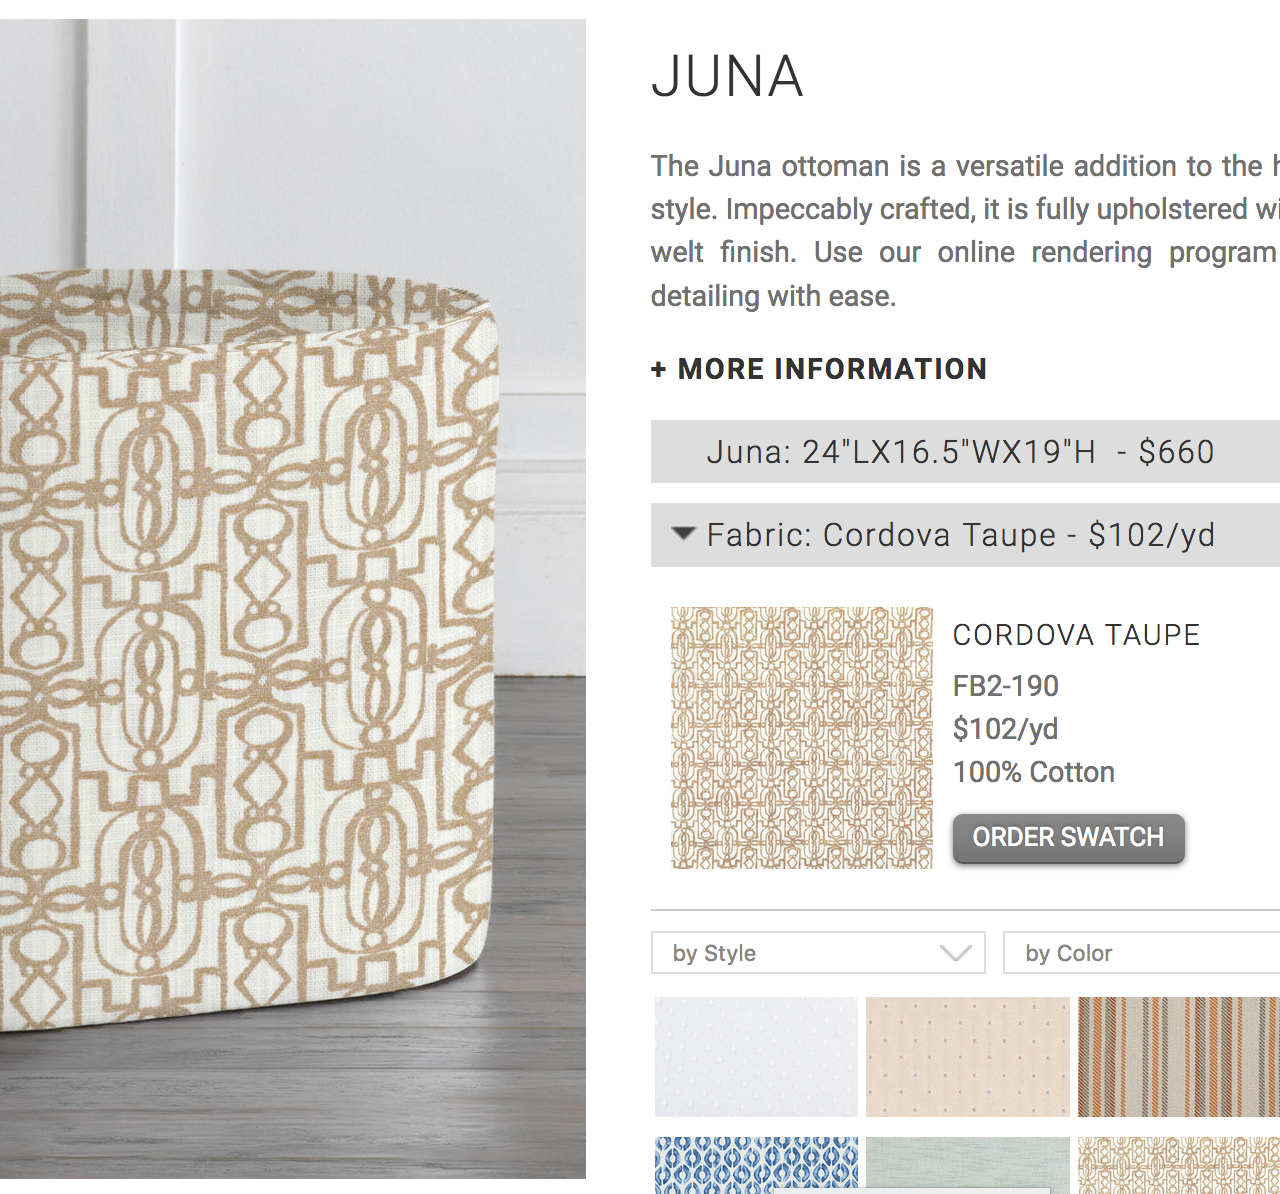 Customized: Juna upholstered in Cordova Taupe fabric, without optional nailheads.